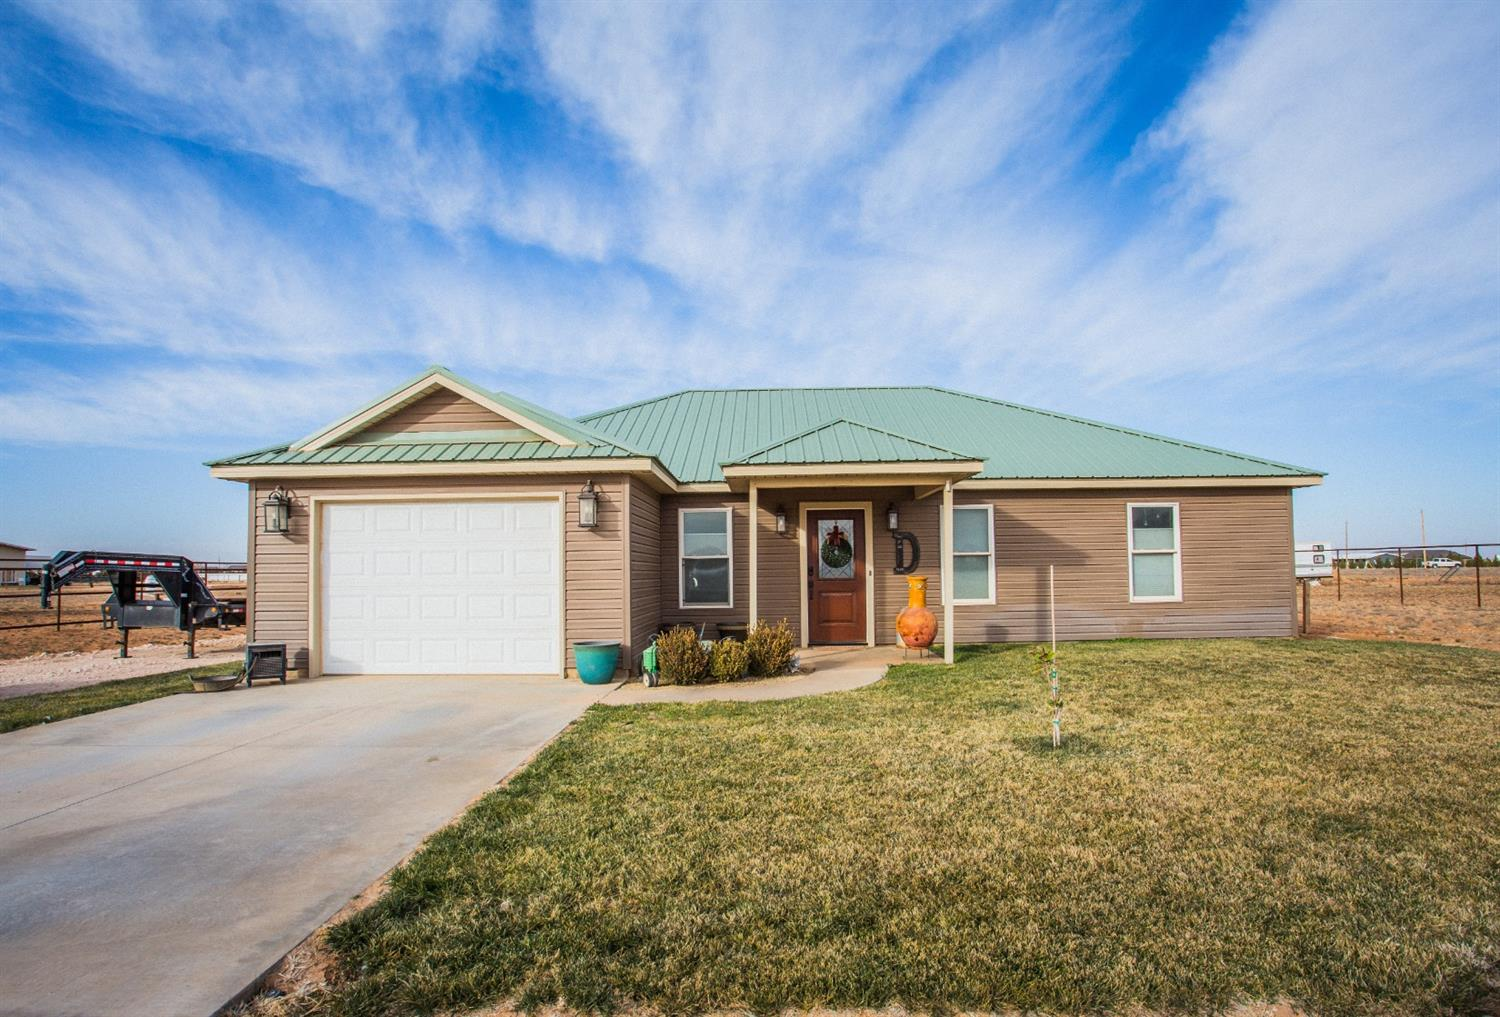 Are you looking for a newer home one 1 acre under $200k? Here is a home built in 2013 sitting on 1 acre. This 2 bed 1 bath is has a spacious open design and also a detached storage shed with a concrete floor! Don't let this one slip by.. Schedule your showing today!